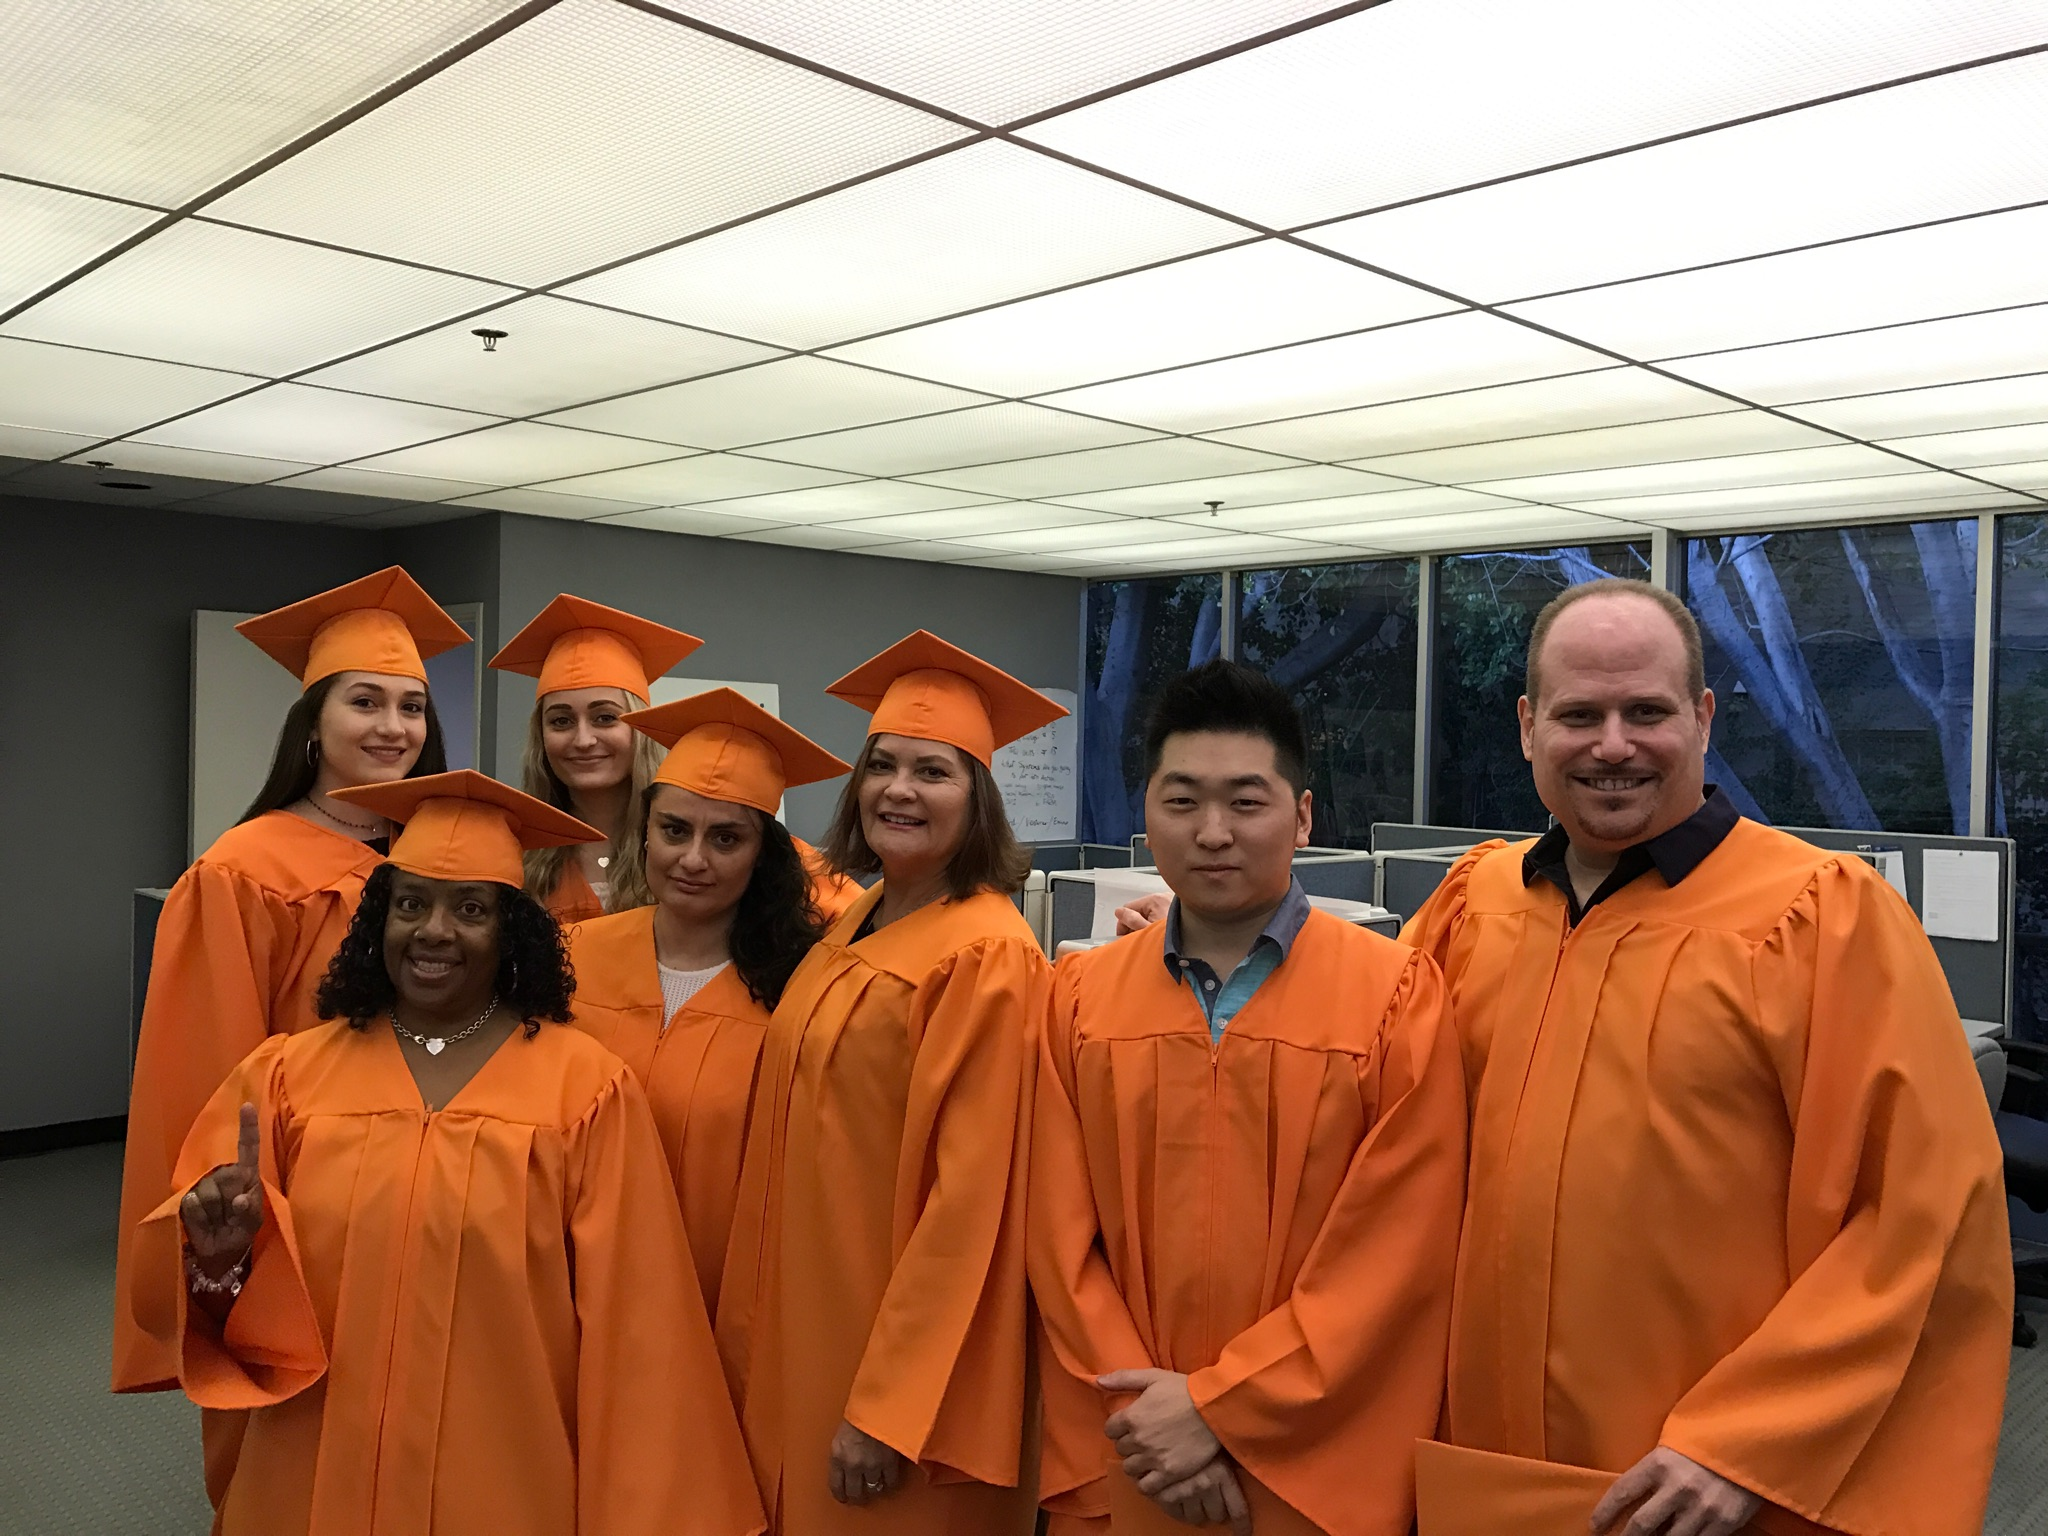 Graduation-March-2017-College-Of-Real-Estate-Get-Your-Real-Estate-License-Real-Estate-Classes5